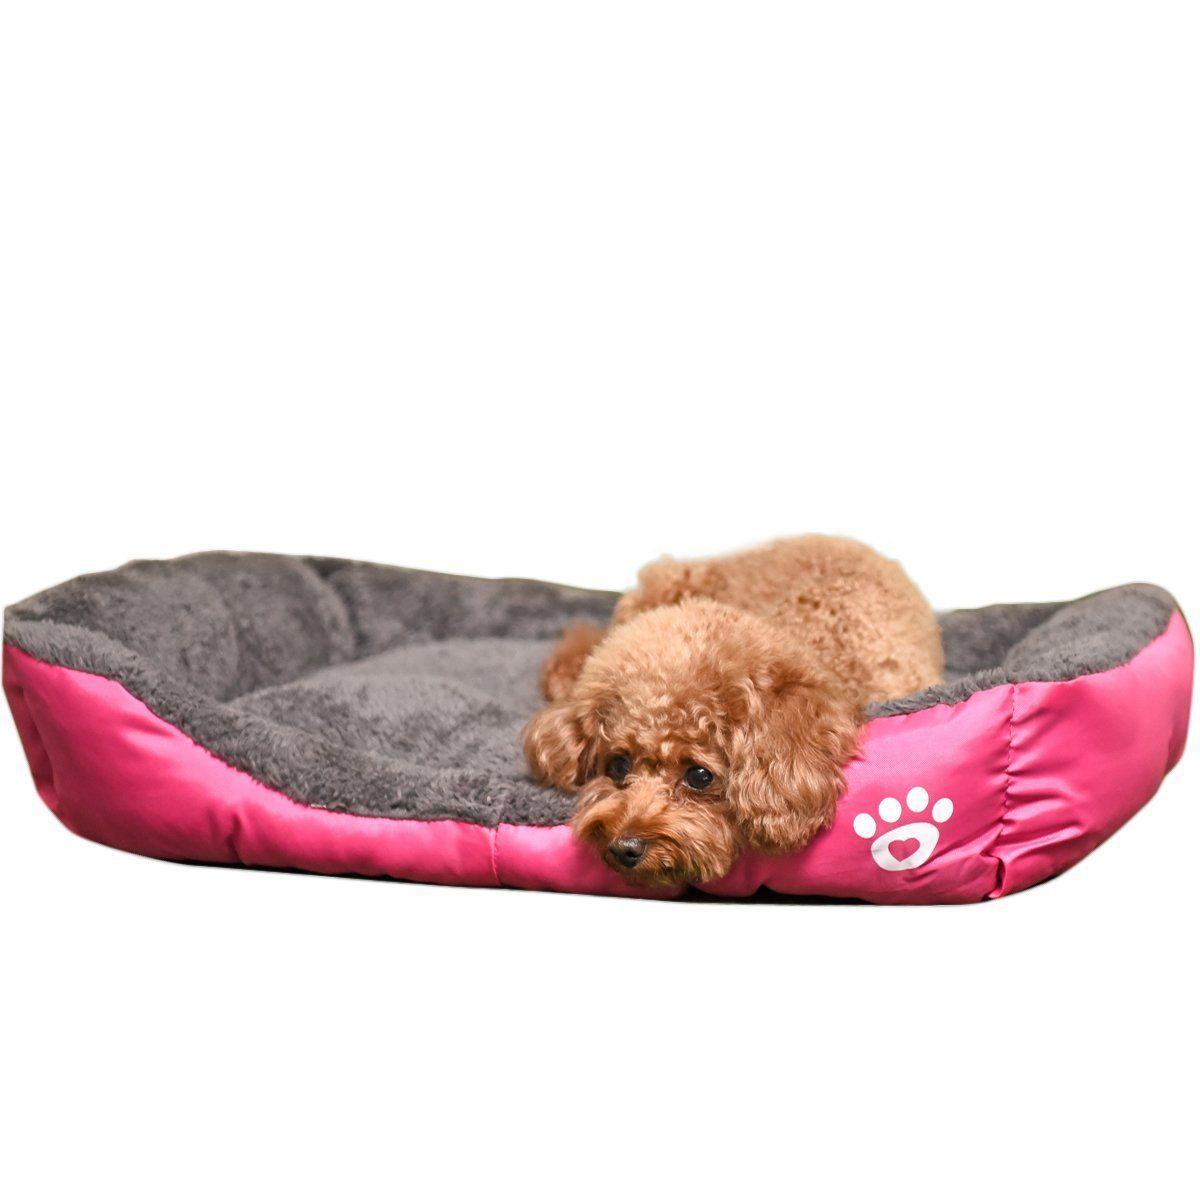 Pawz Road Pet Dog Bed Colorful Rainbow Design Oxford Fabric